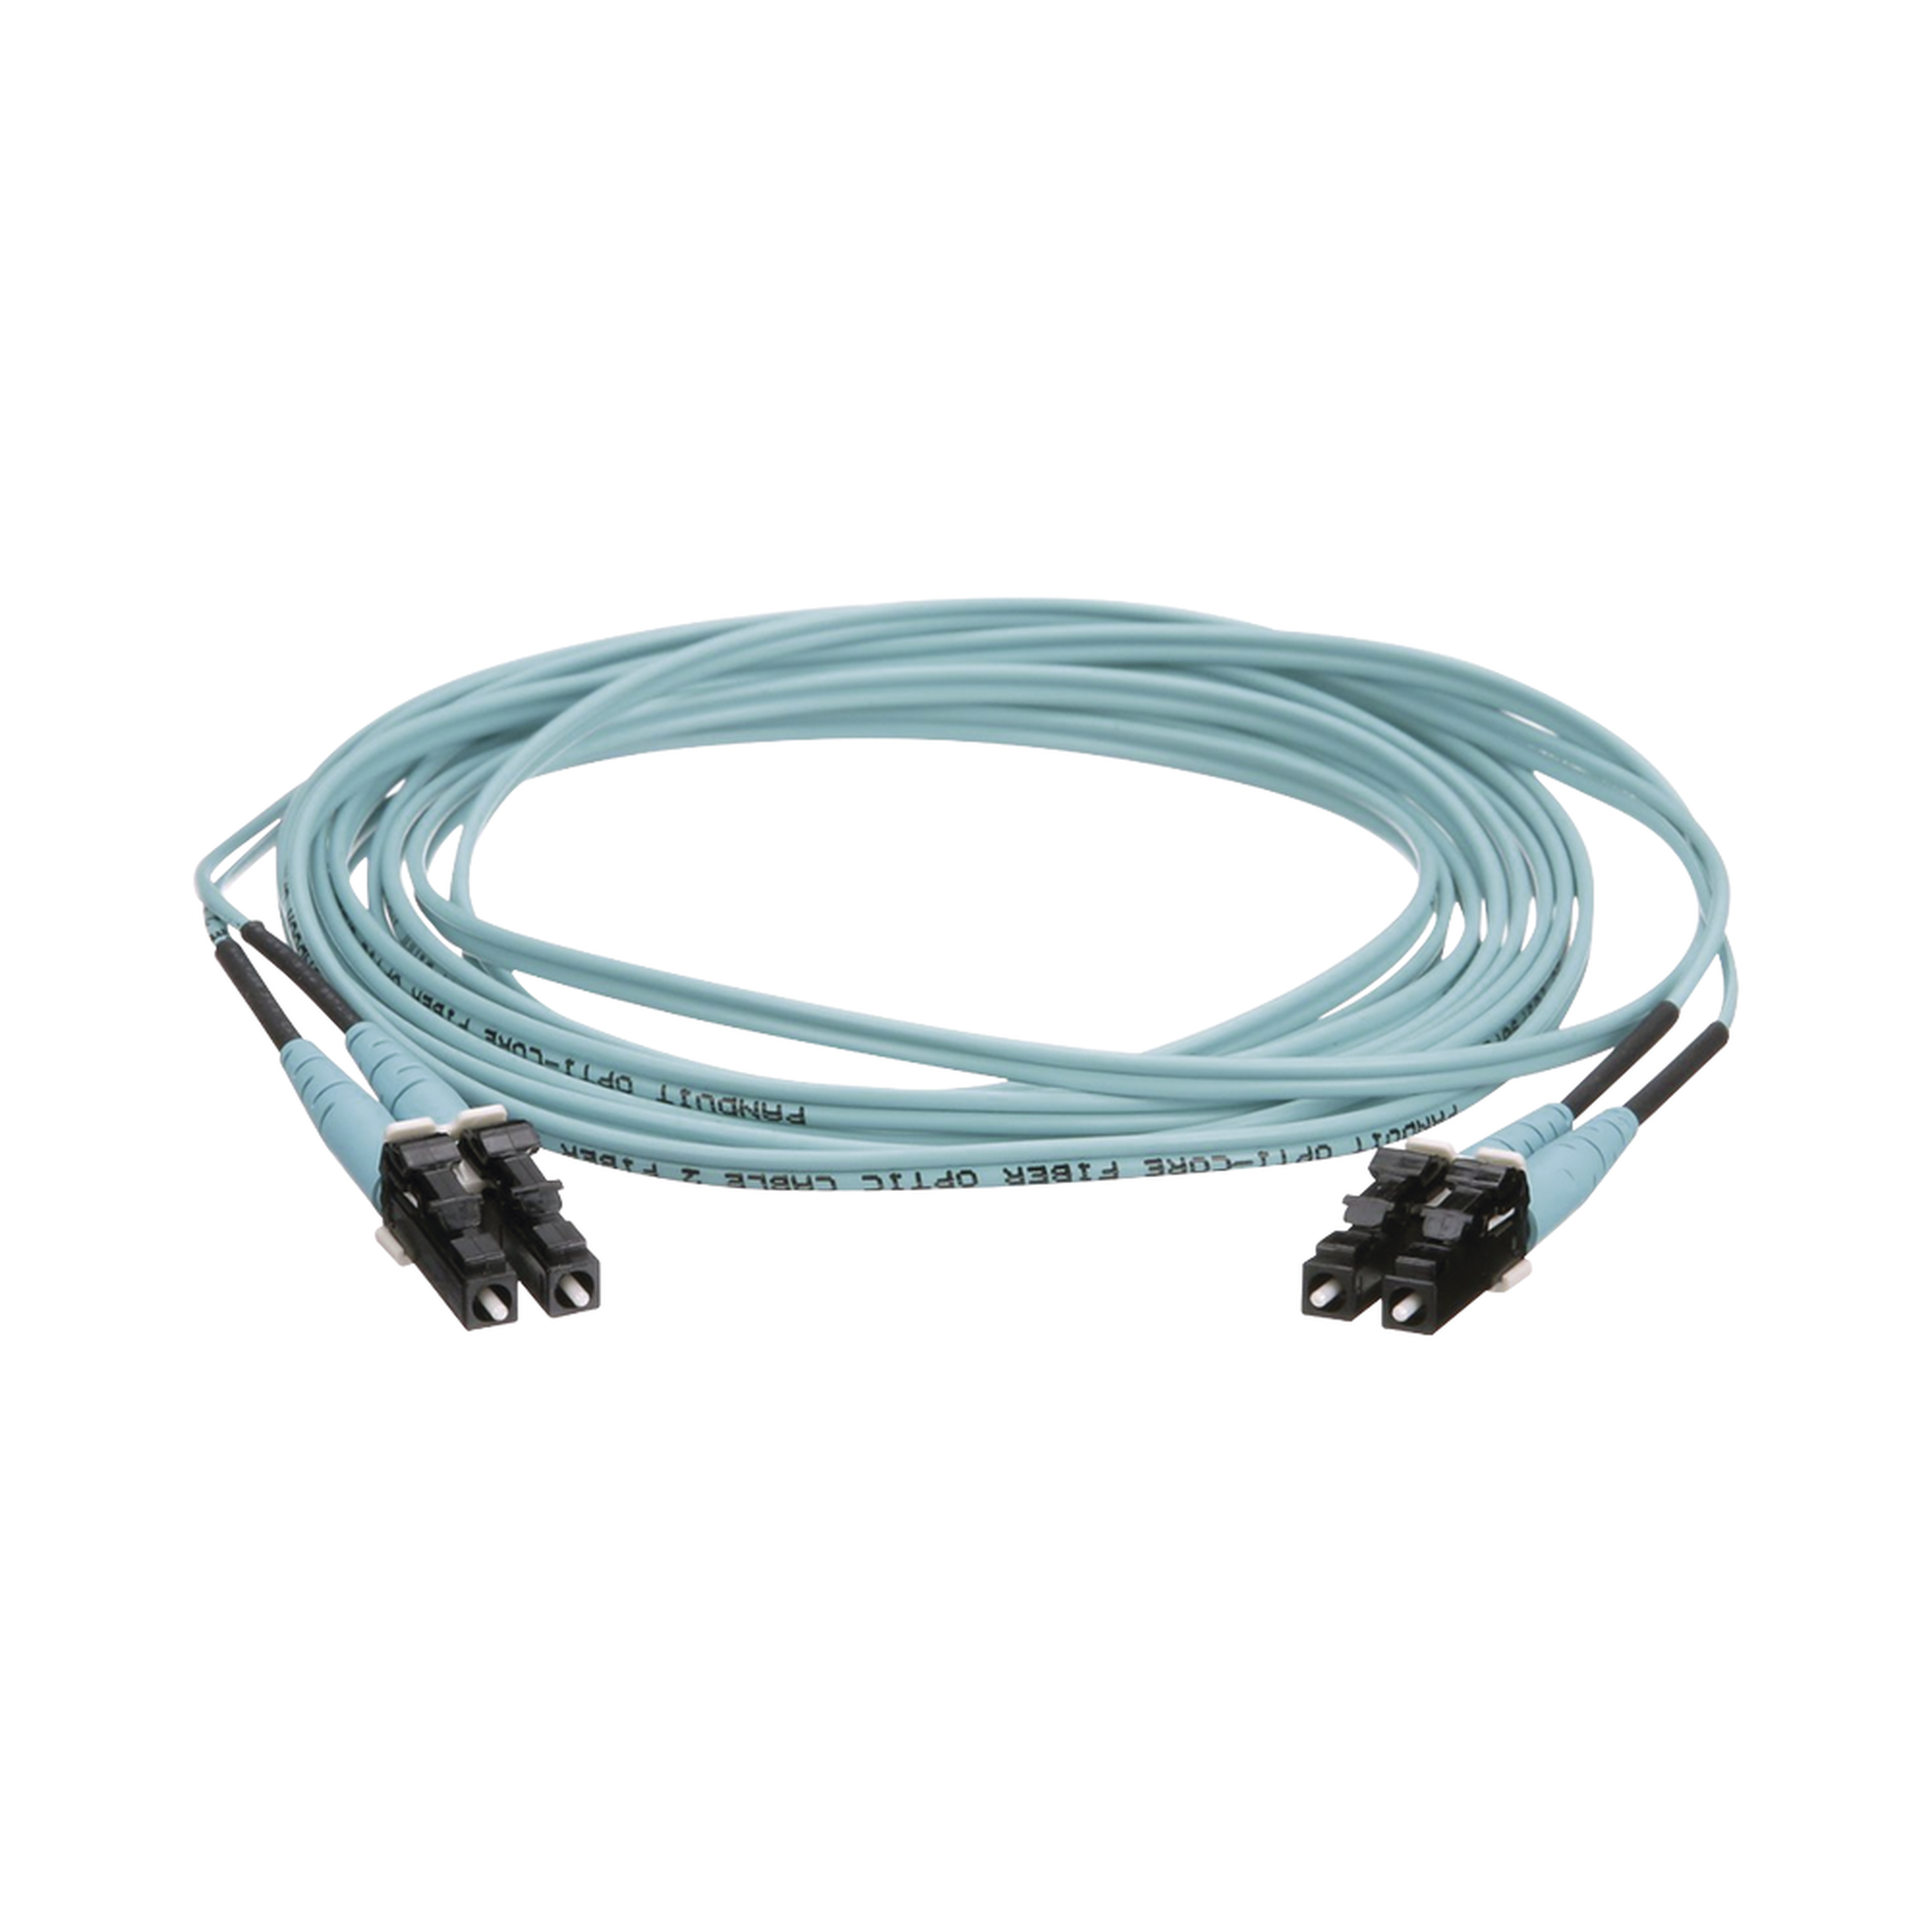 Jumper de Fibra Optica Multimodo 50/125 OM4, LC-LC Duplex, OFNR (Riser), Color Aqua, 9 Metros